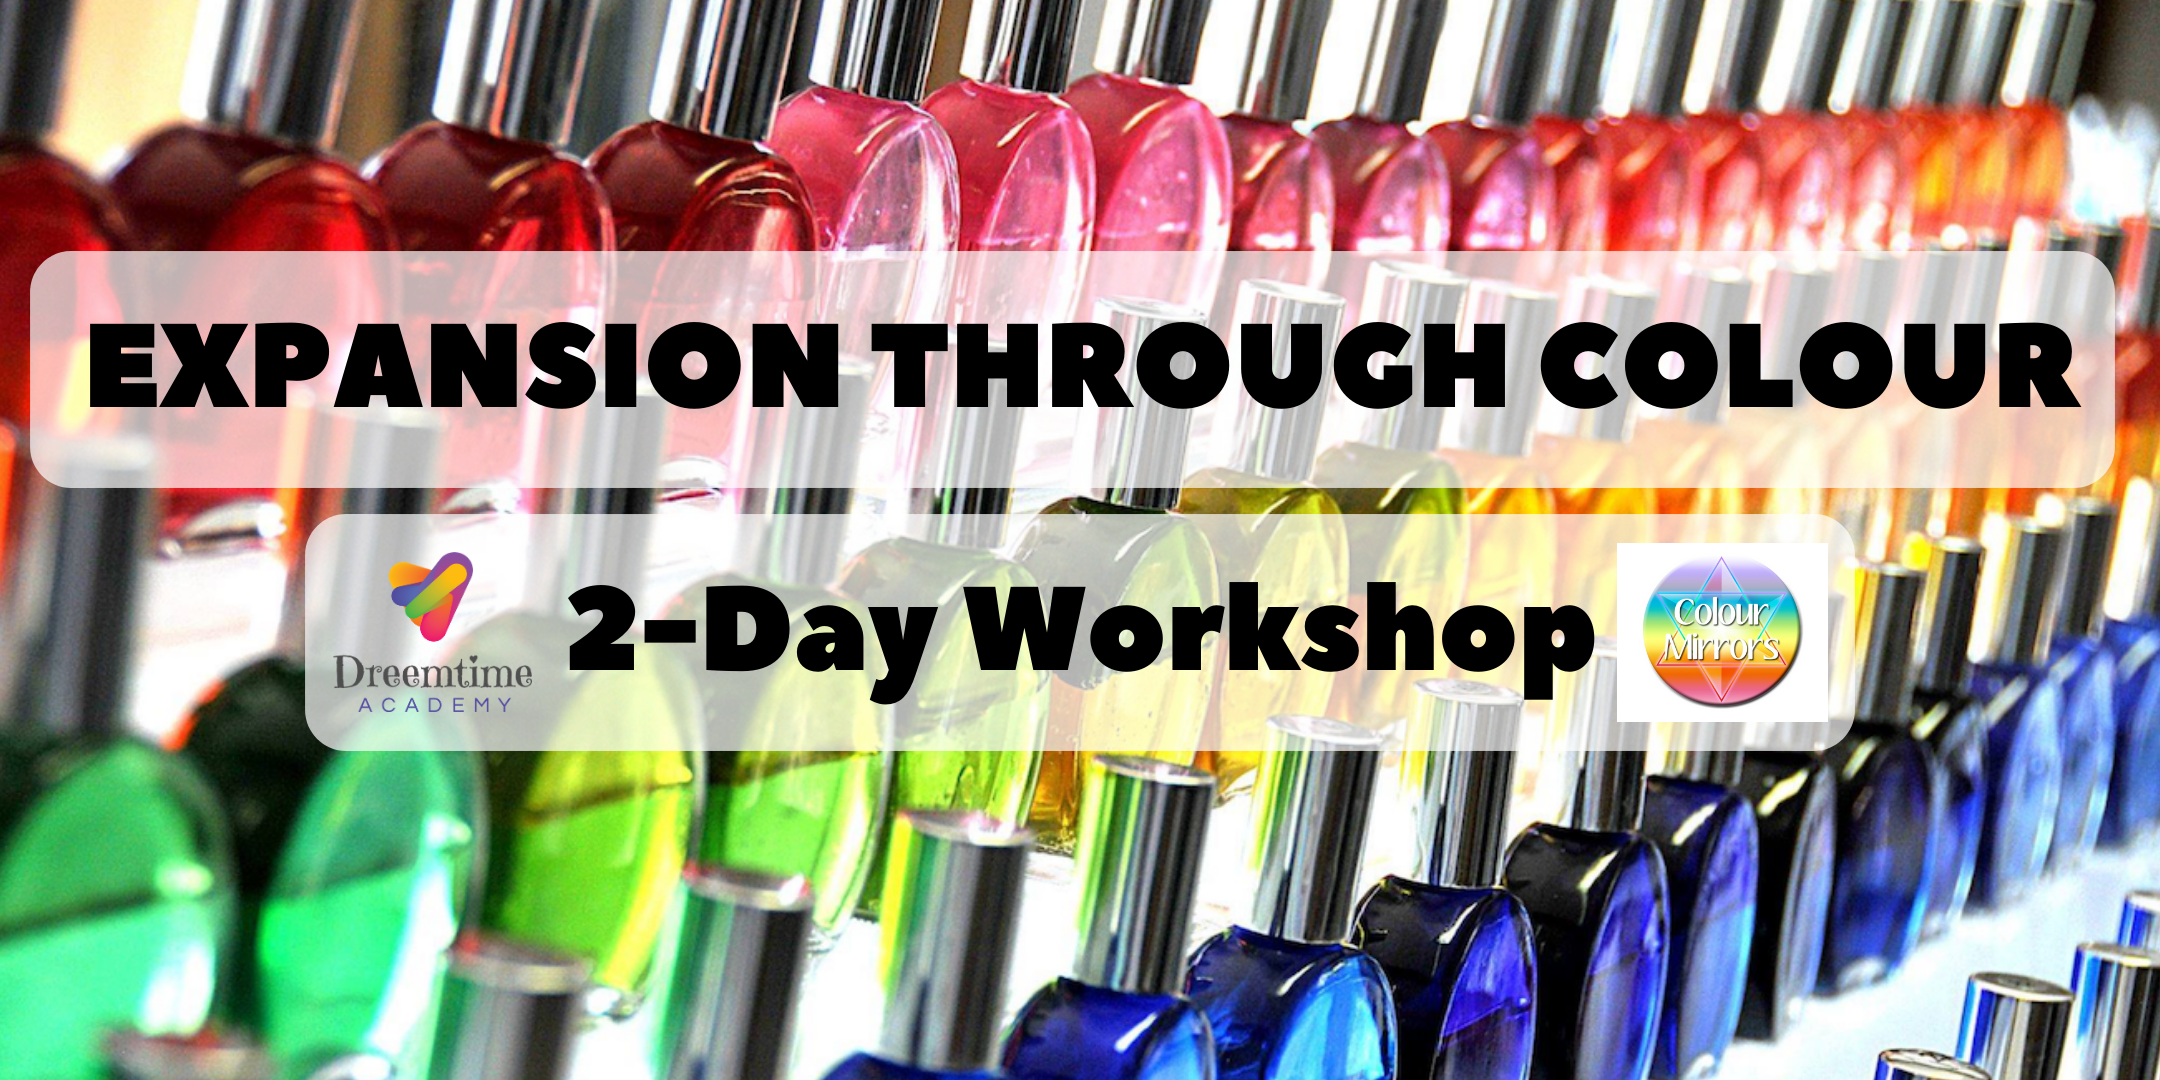 Expansion Through Colour (2-Day Workshop)